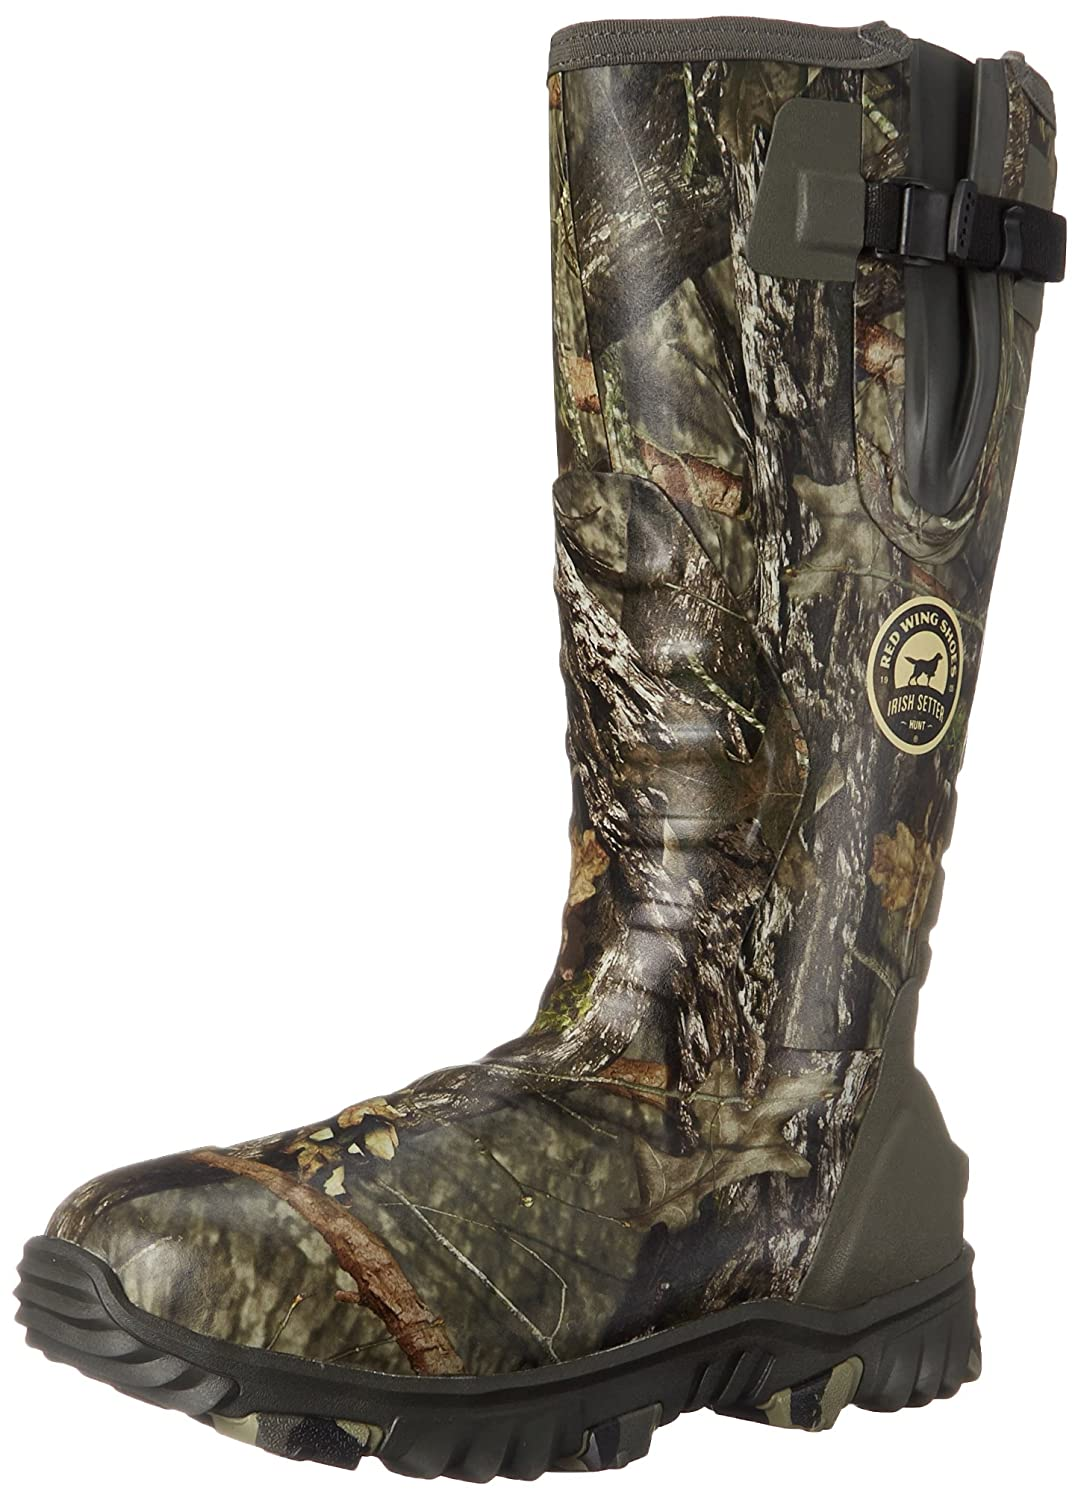 Irish Setter メンズ B00P9NJKXQ 15 mens_us|Mod Country Camo Mod Country Camo 15 mens_us